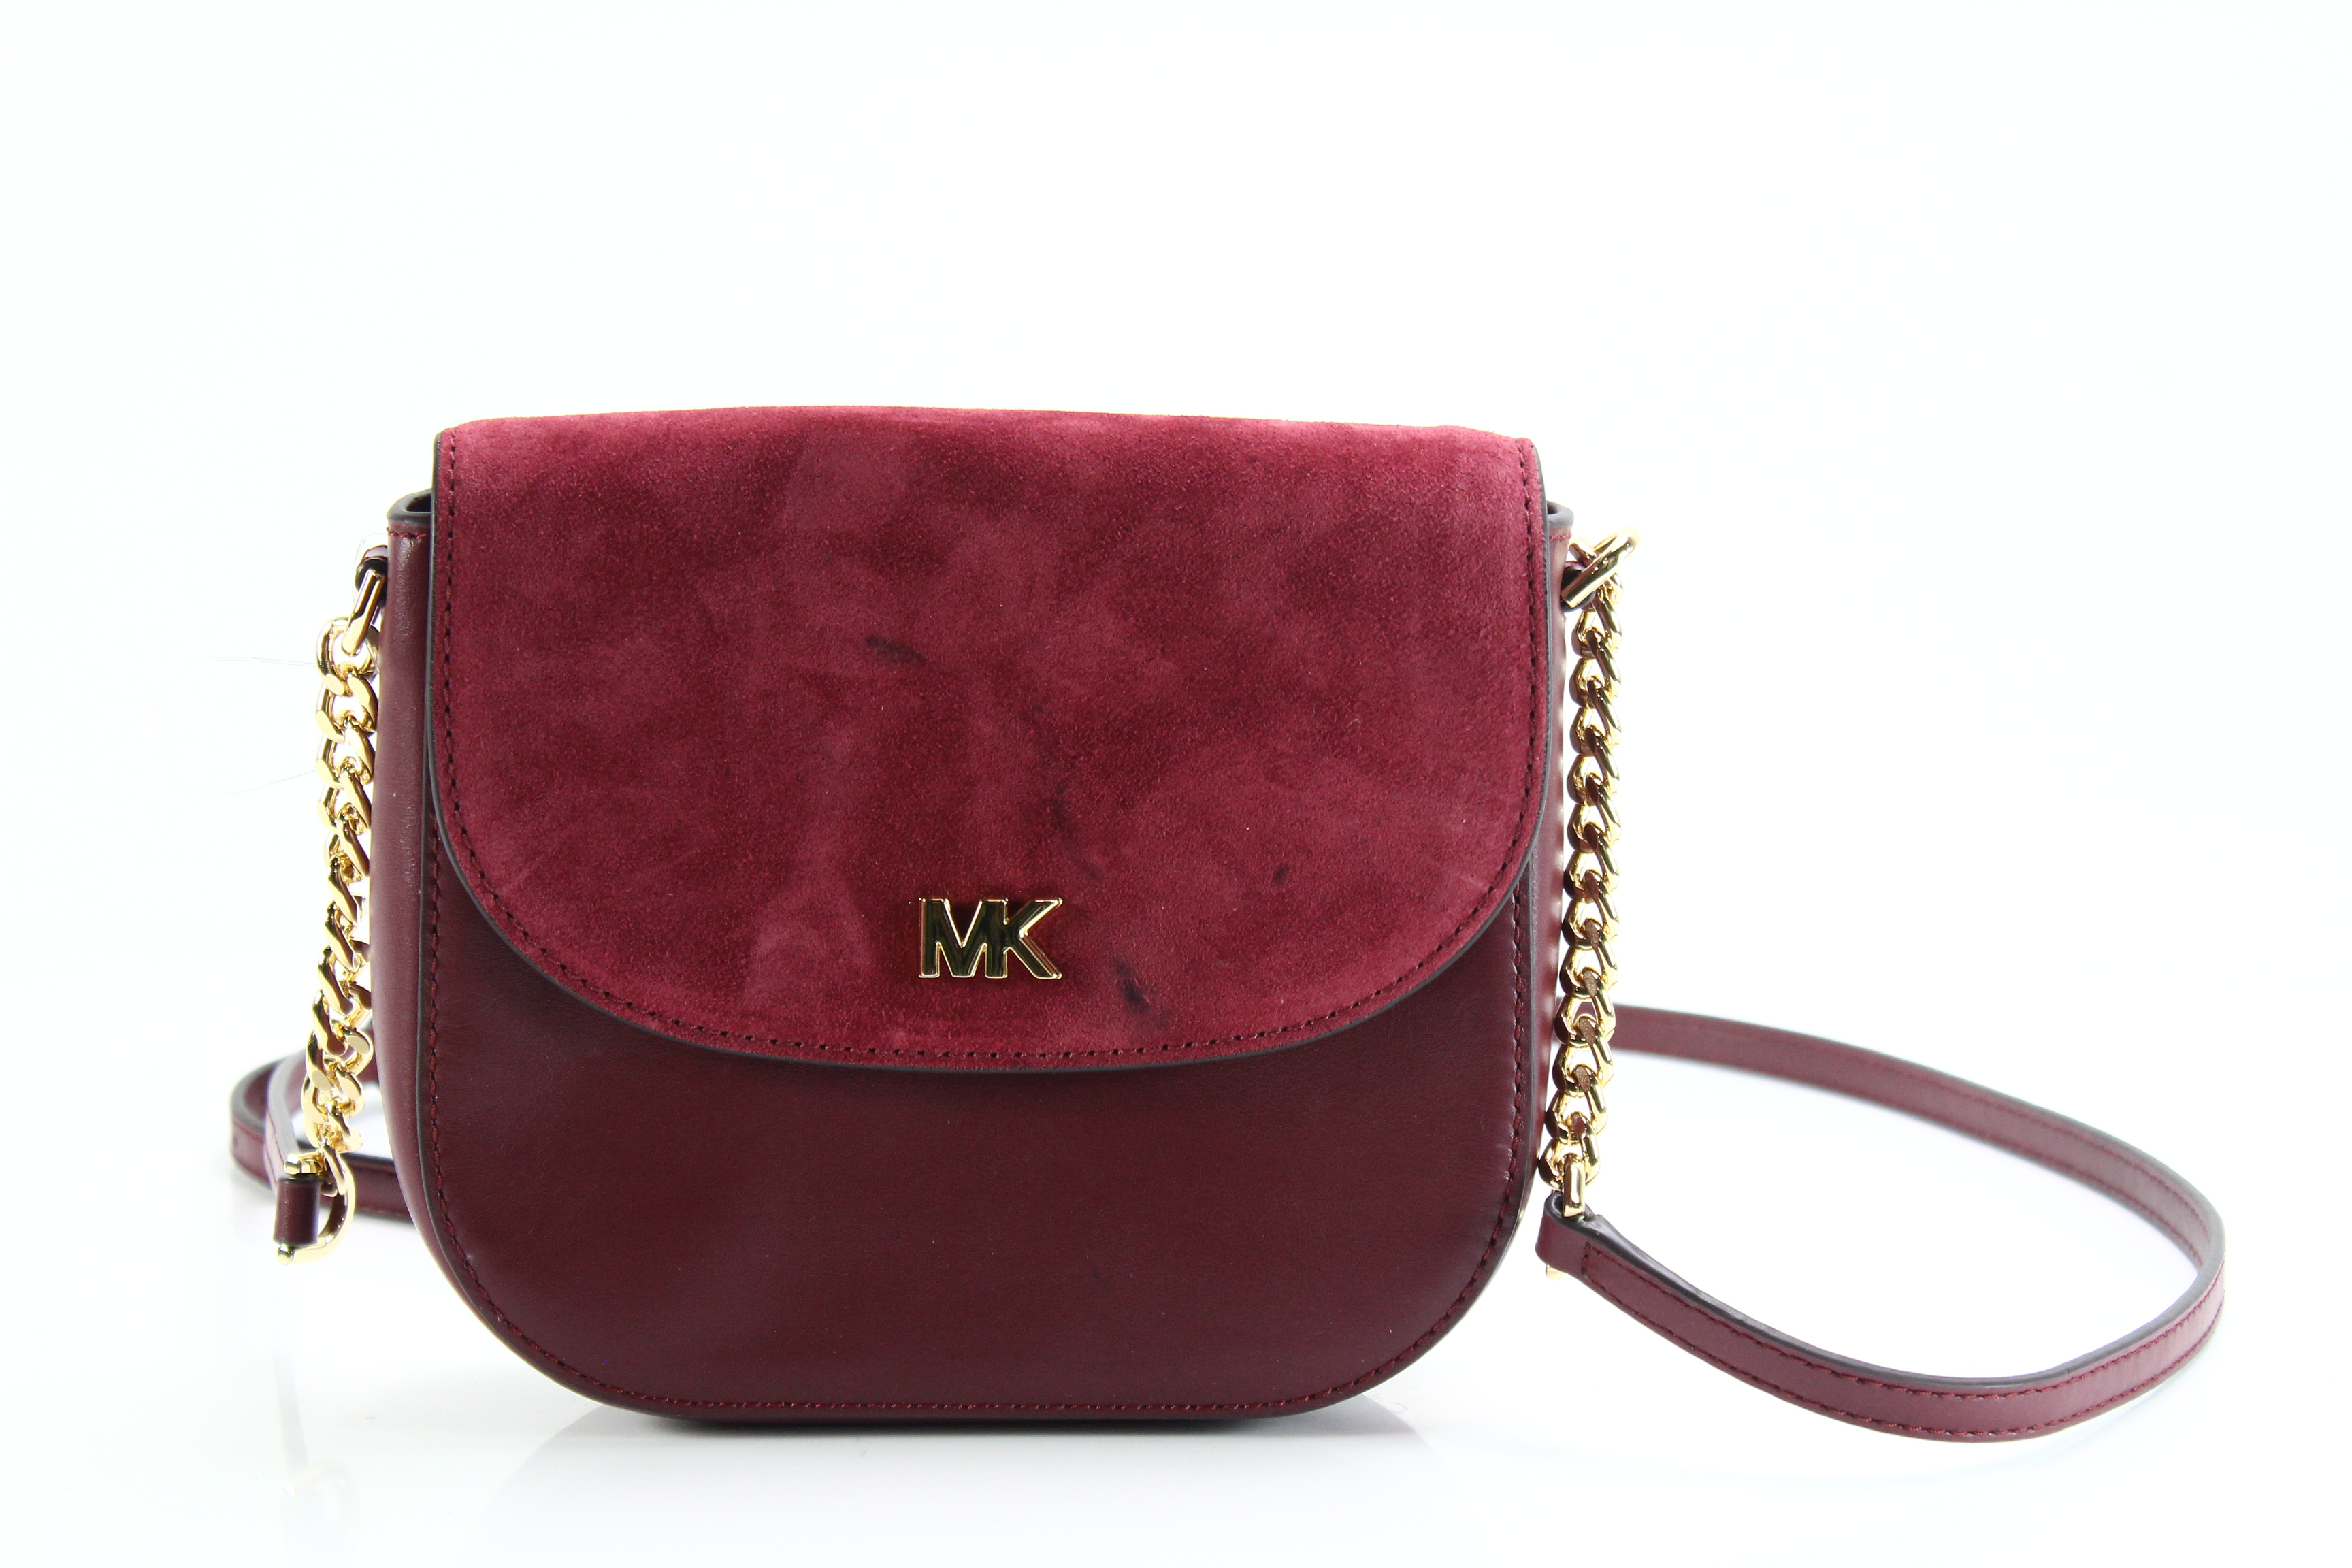 9696a343019634 Michael Kors NEW Red Maroon Gold Half Dome Small Crossbody Leather Bag $148  #068